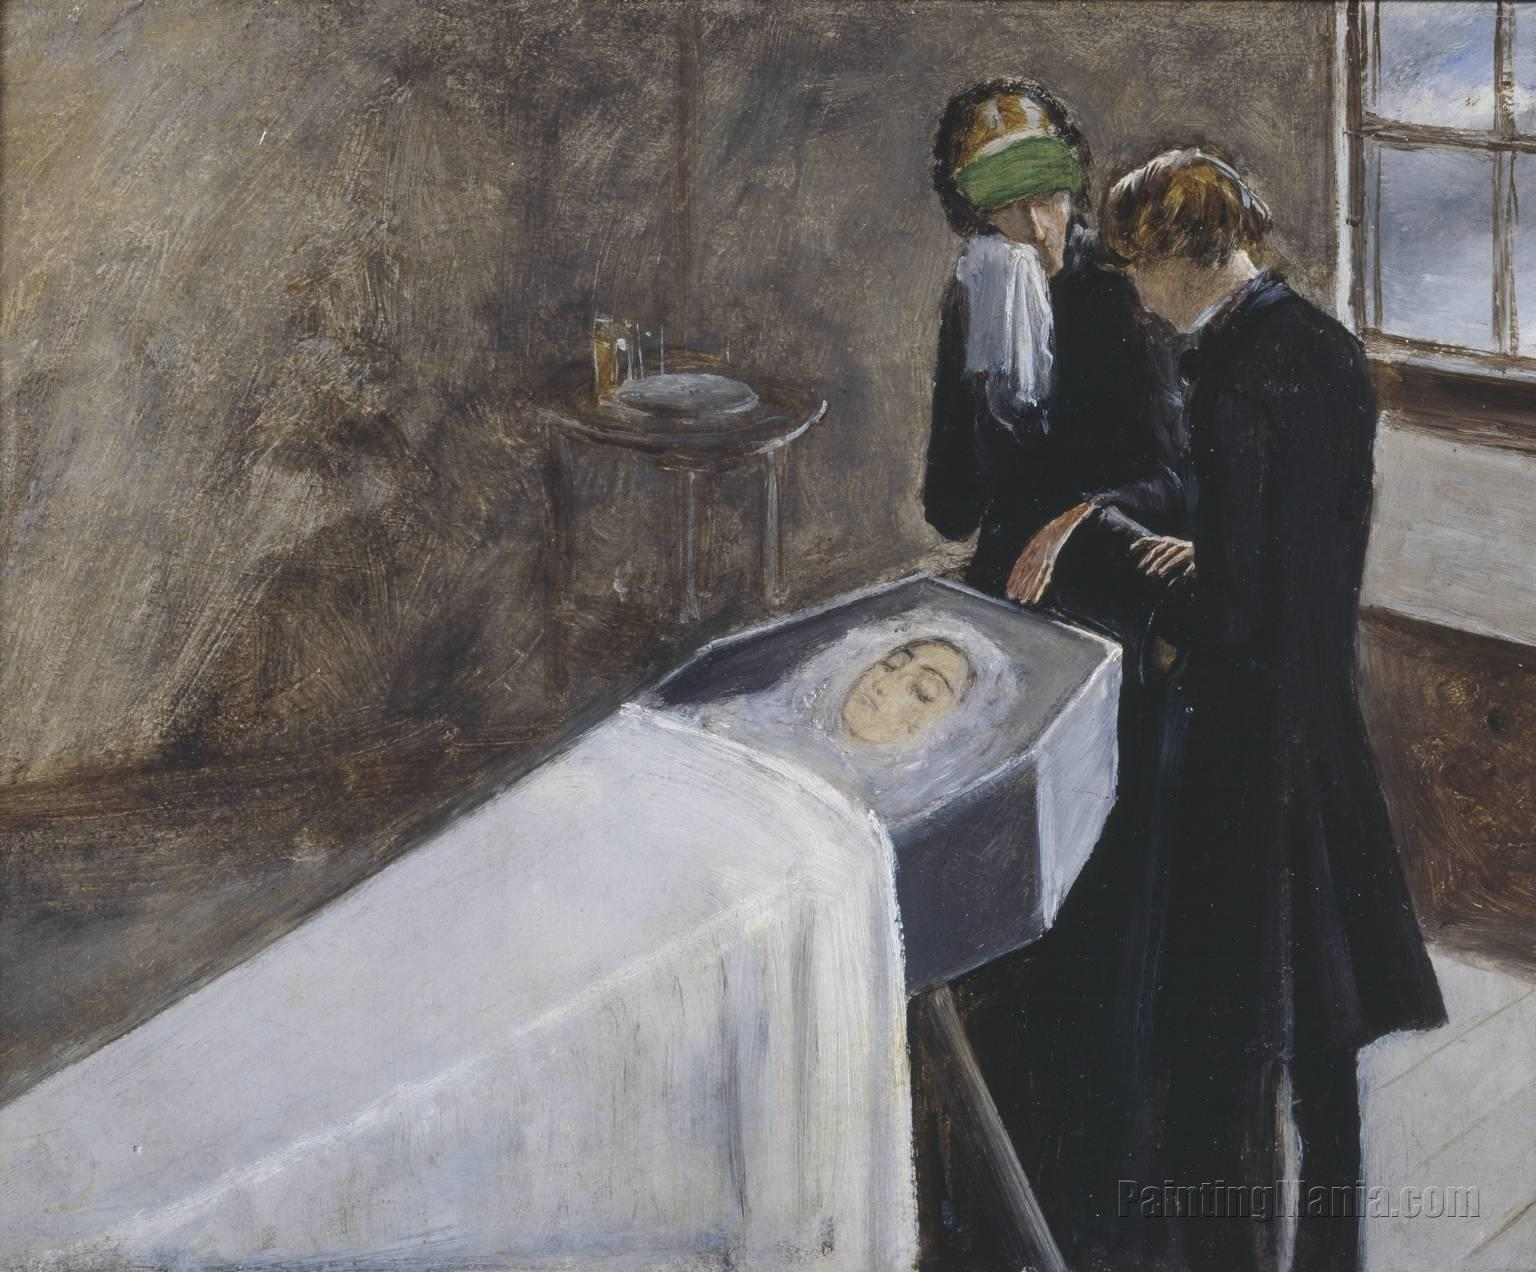 The Artist Attending the Mourning of a Young Girl